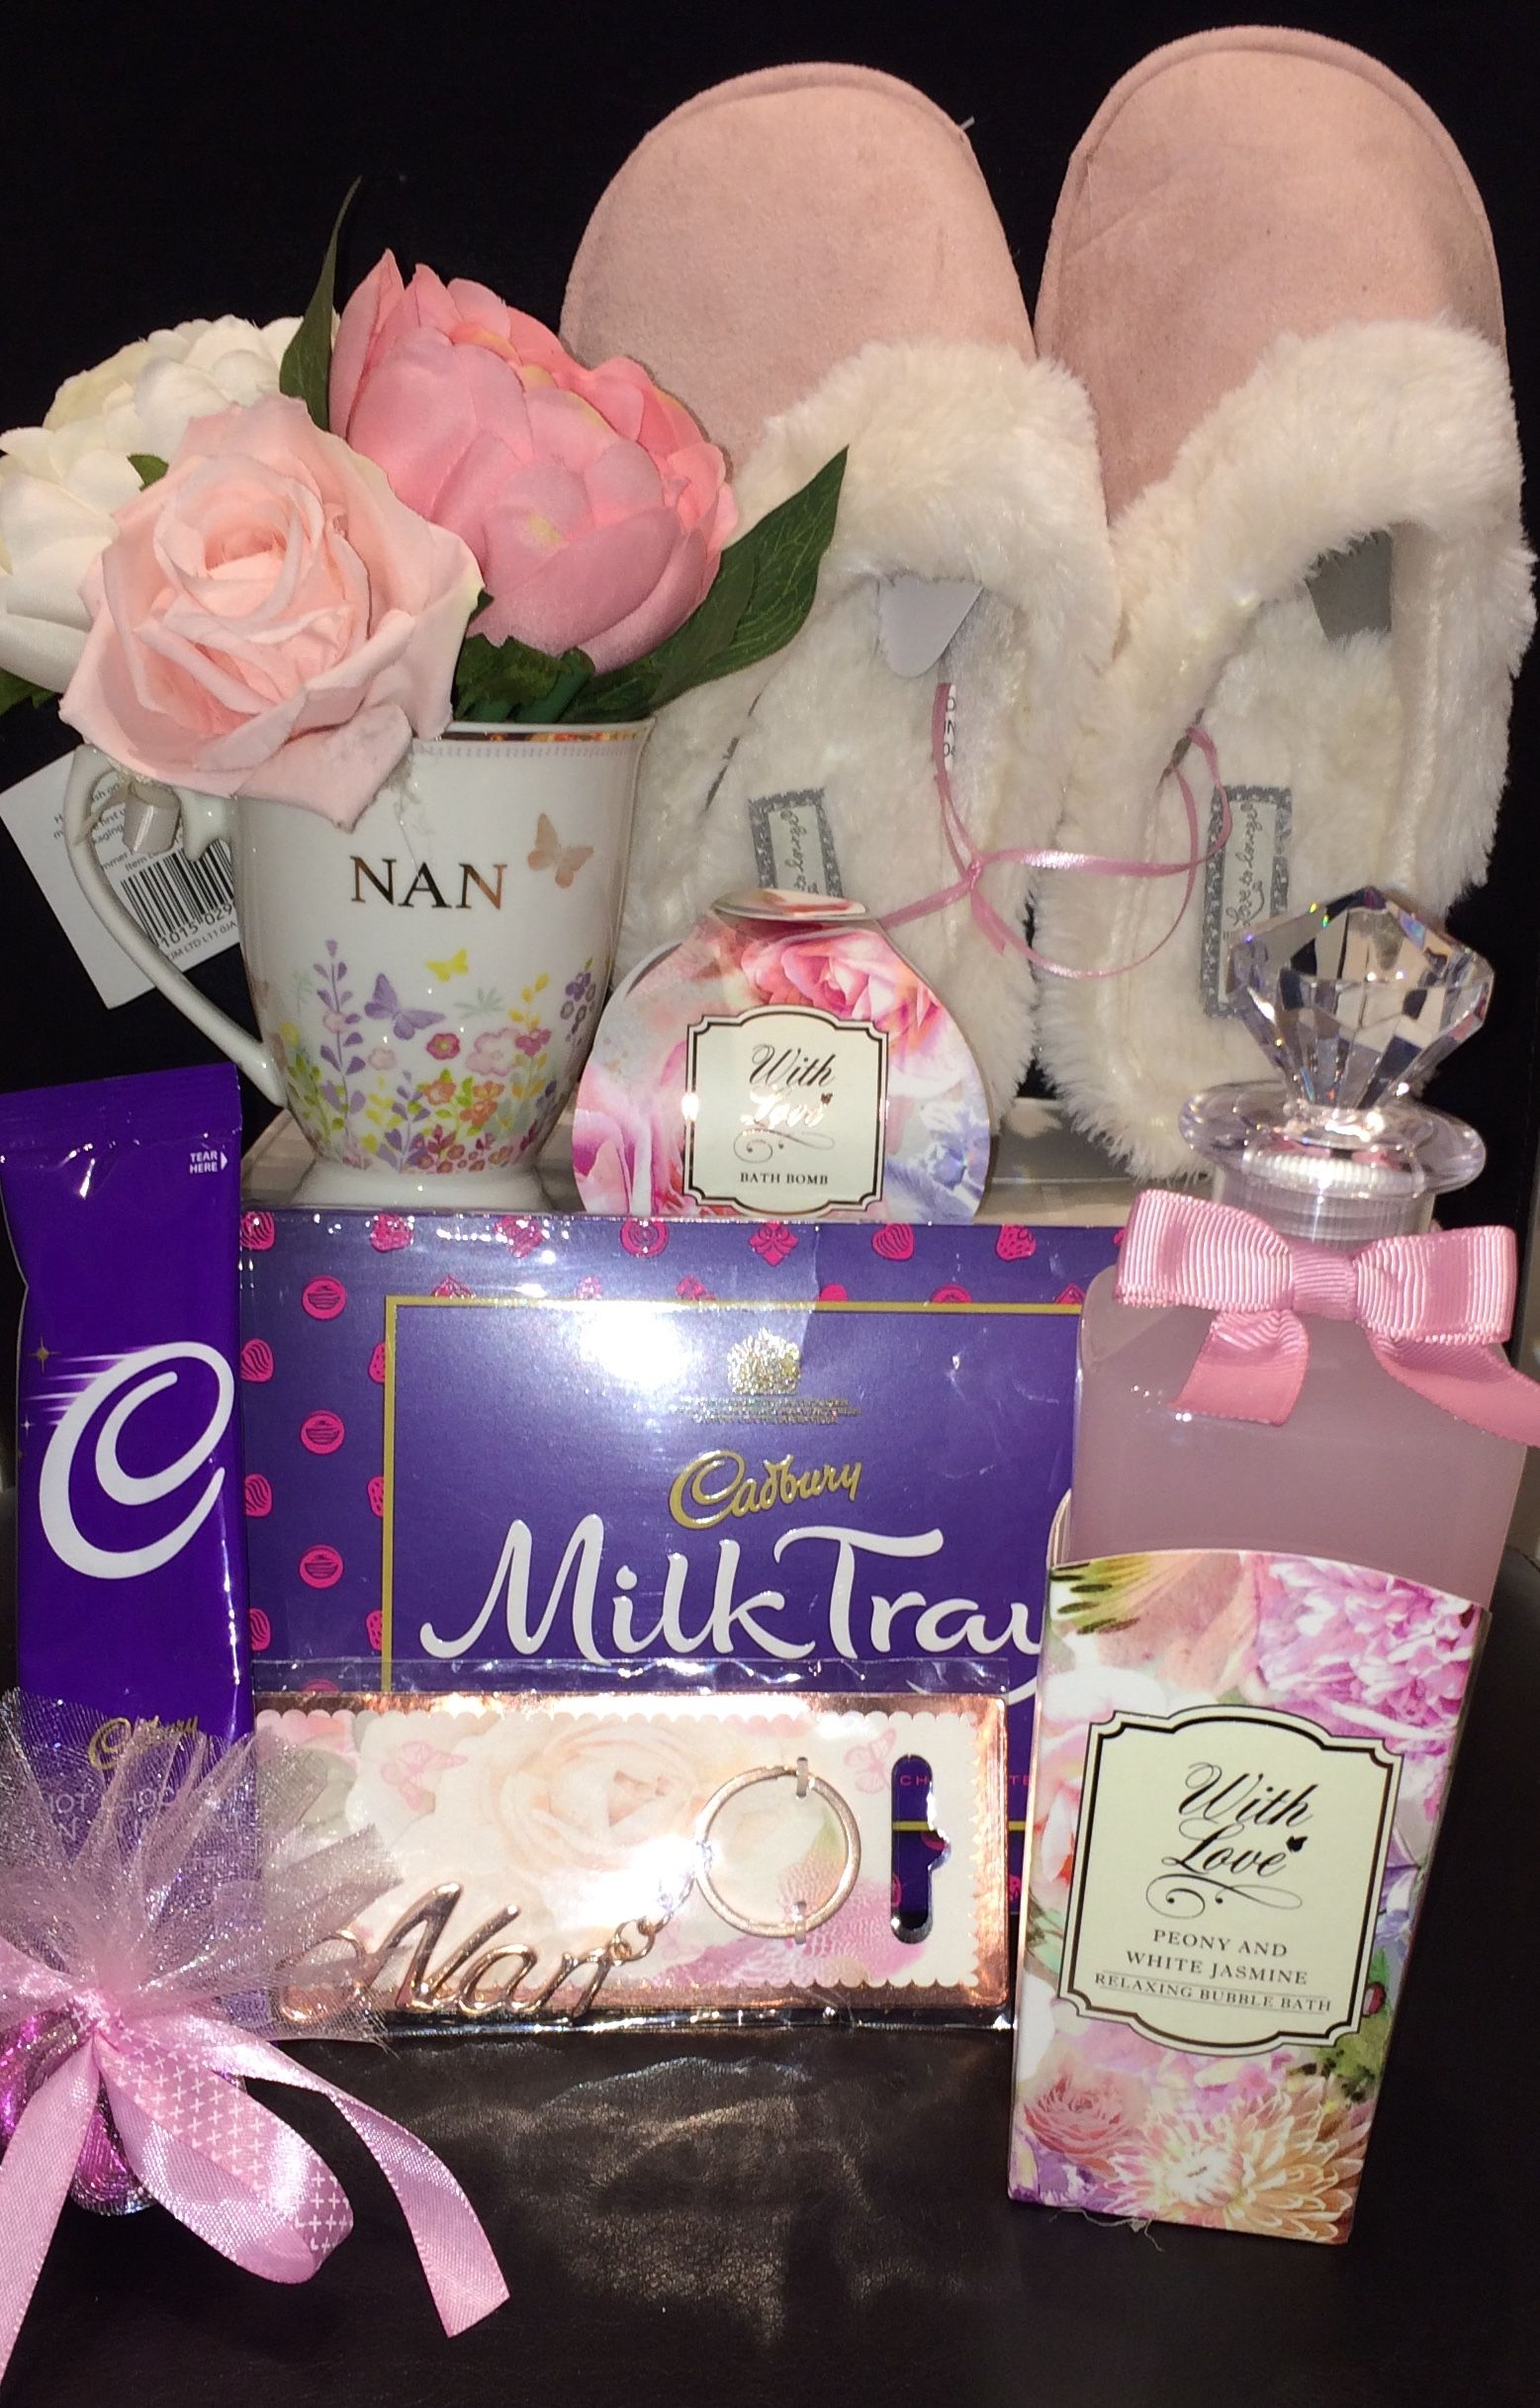 Pin by Serena's spa party on All me in 2020 Gifts for